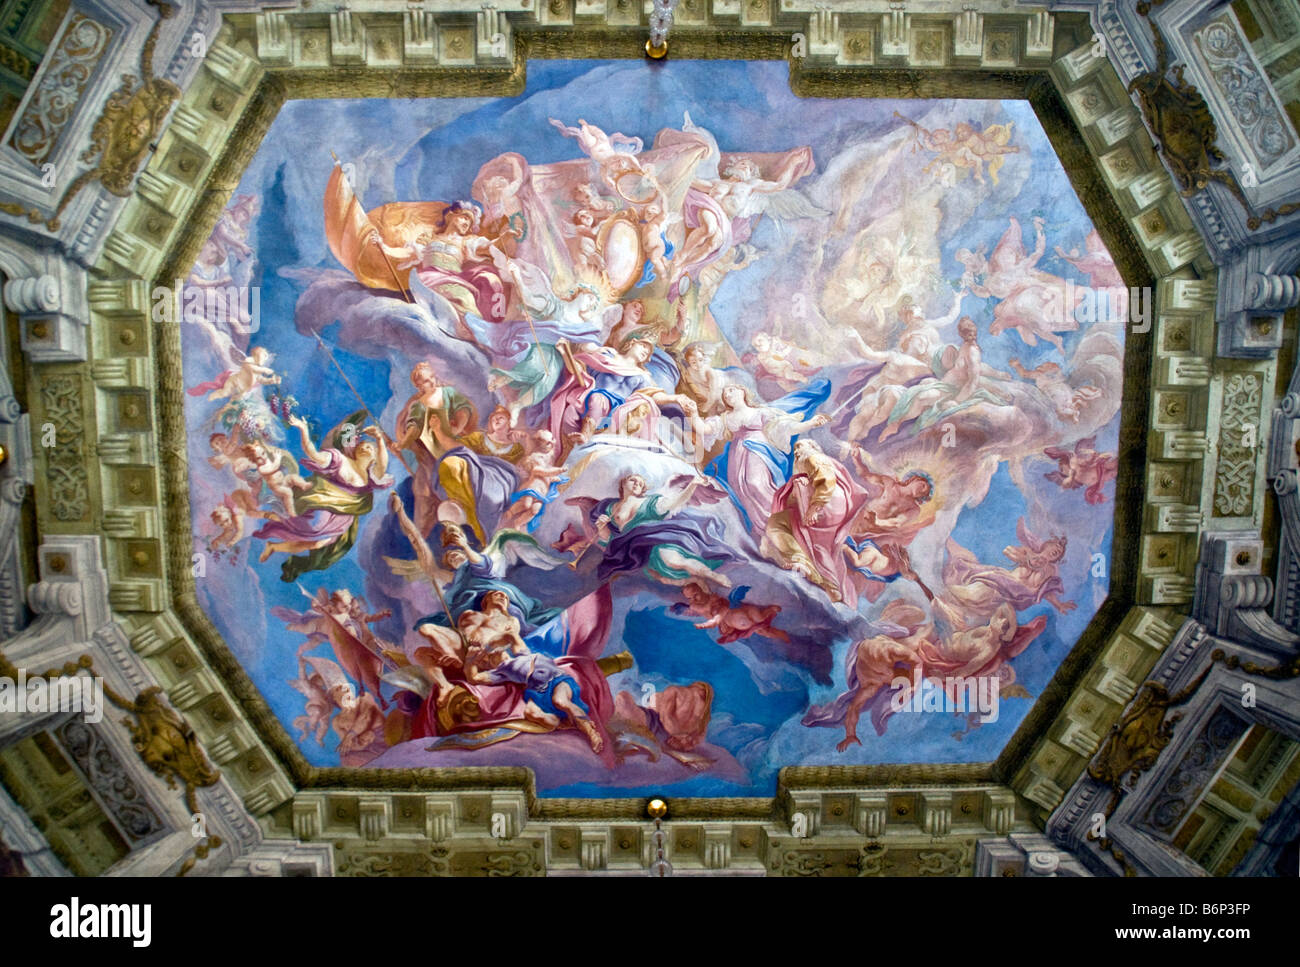 Design Ceiling Mural viennas belvedere palace marble room ceiling mural baroque stock photo architecture built by prince eugene of savoy